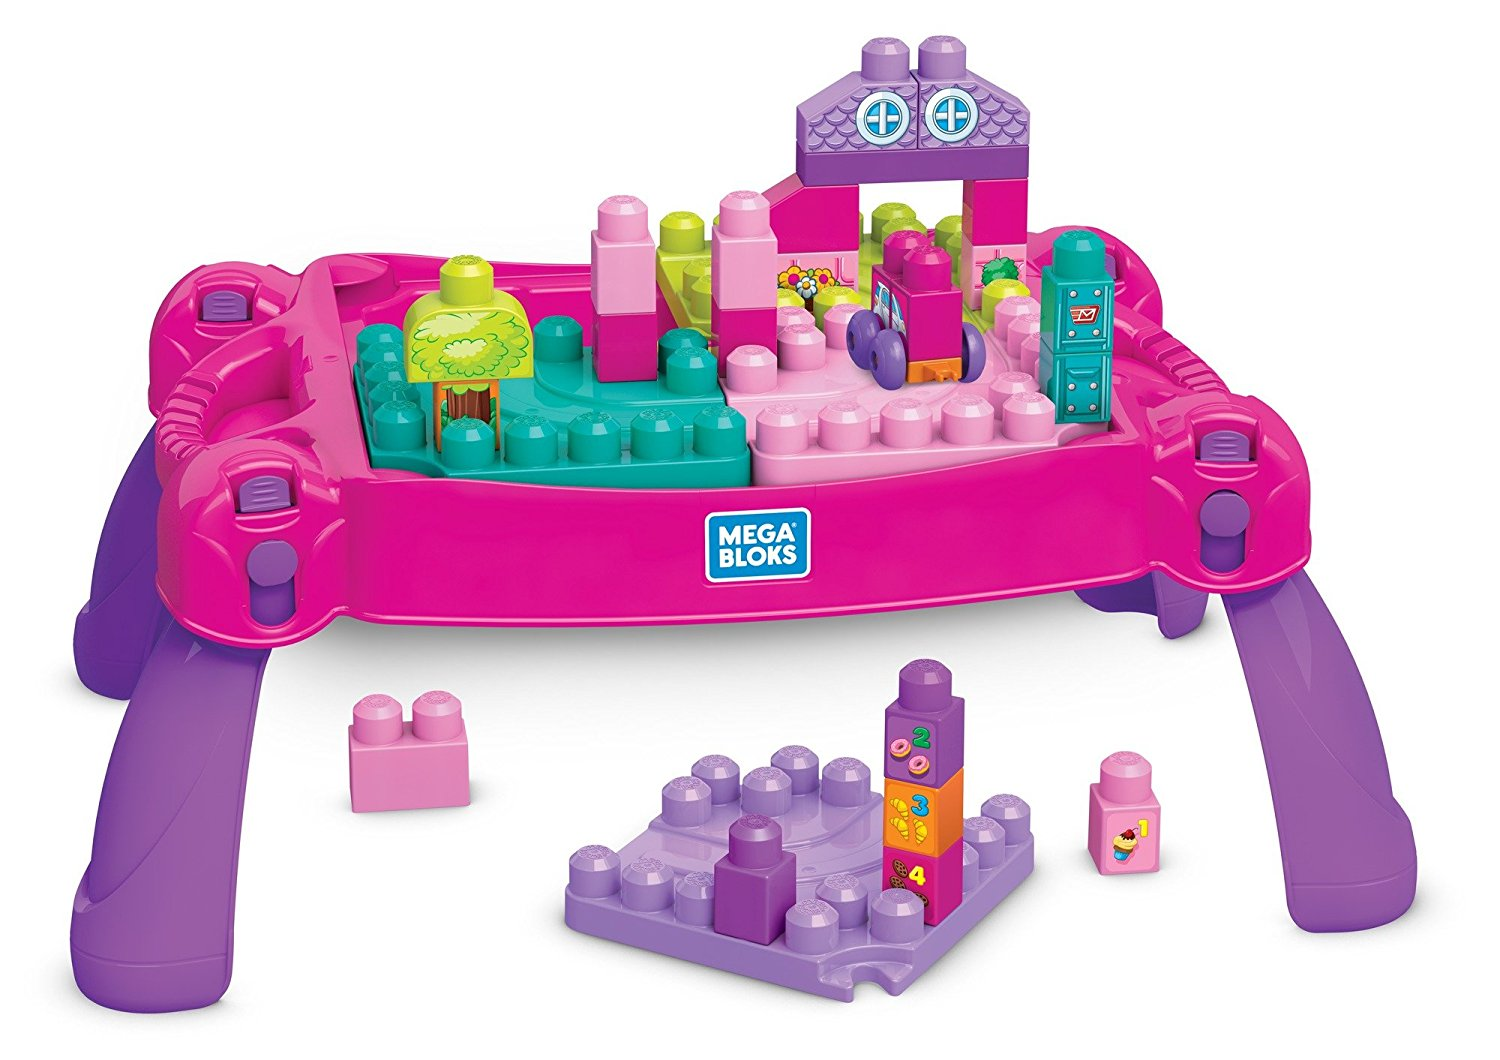 Mega Construx Build 'N Learn Table Building Set Pink or Blue